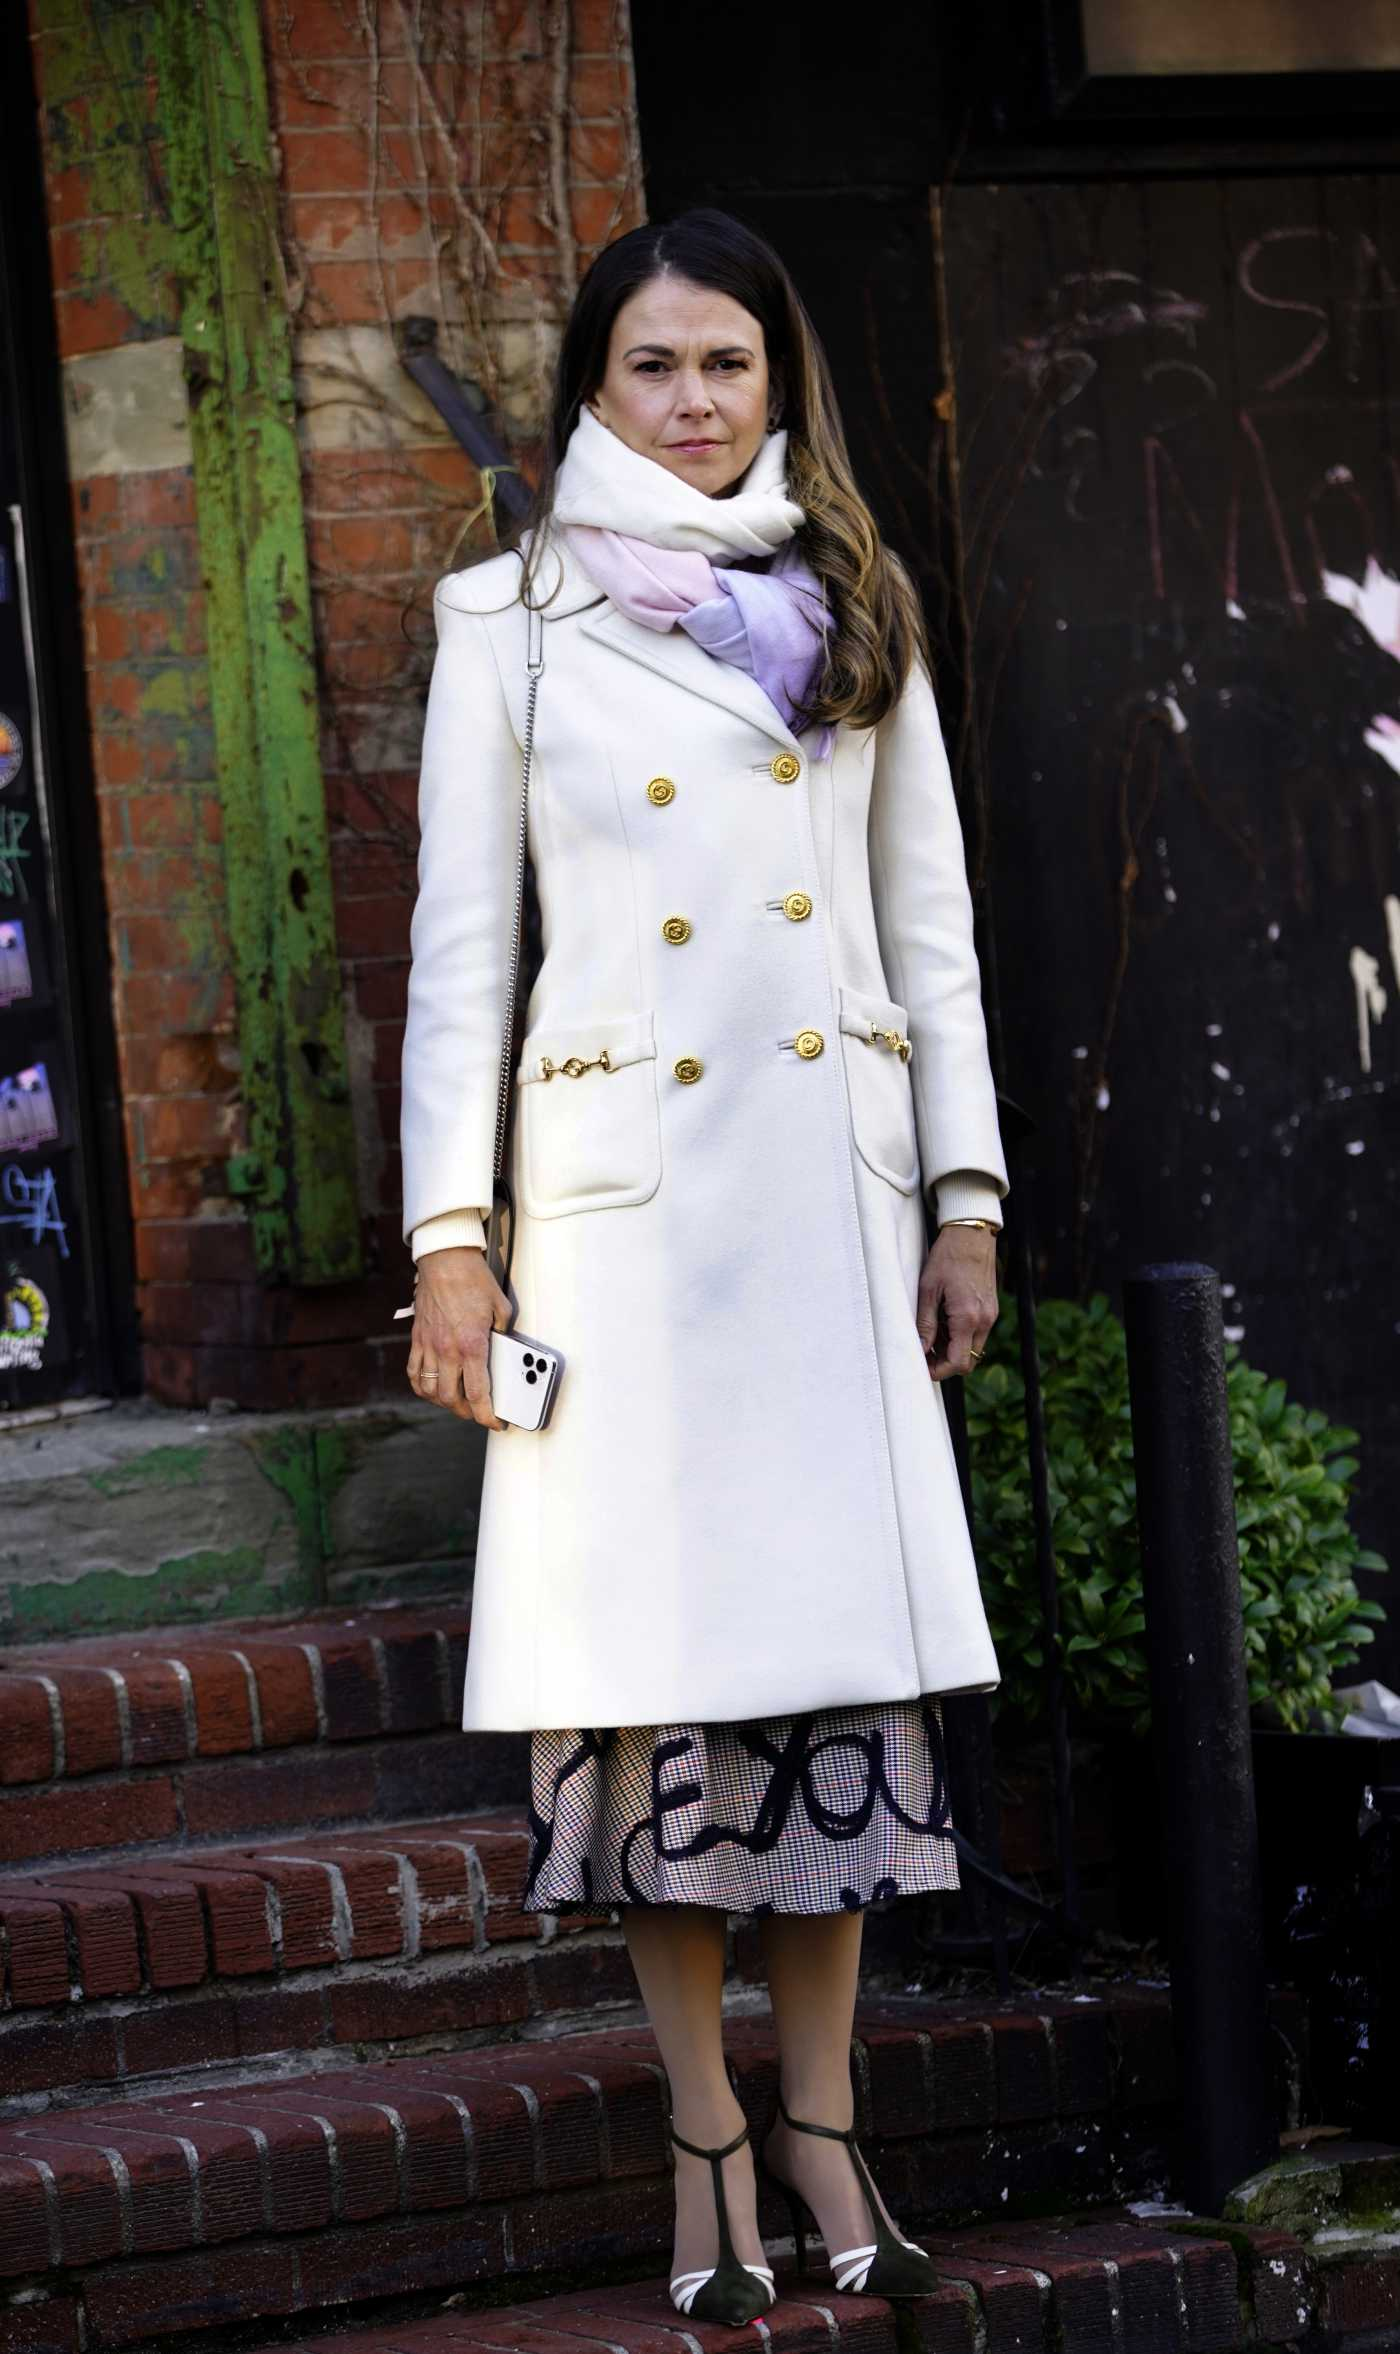 Sutton Foster in a White Coat on the Set of Younger in Brooklyn, NYC 01/21/2021